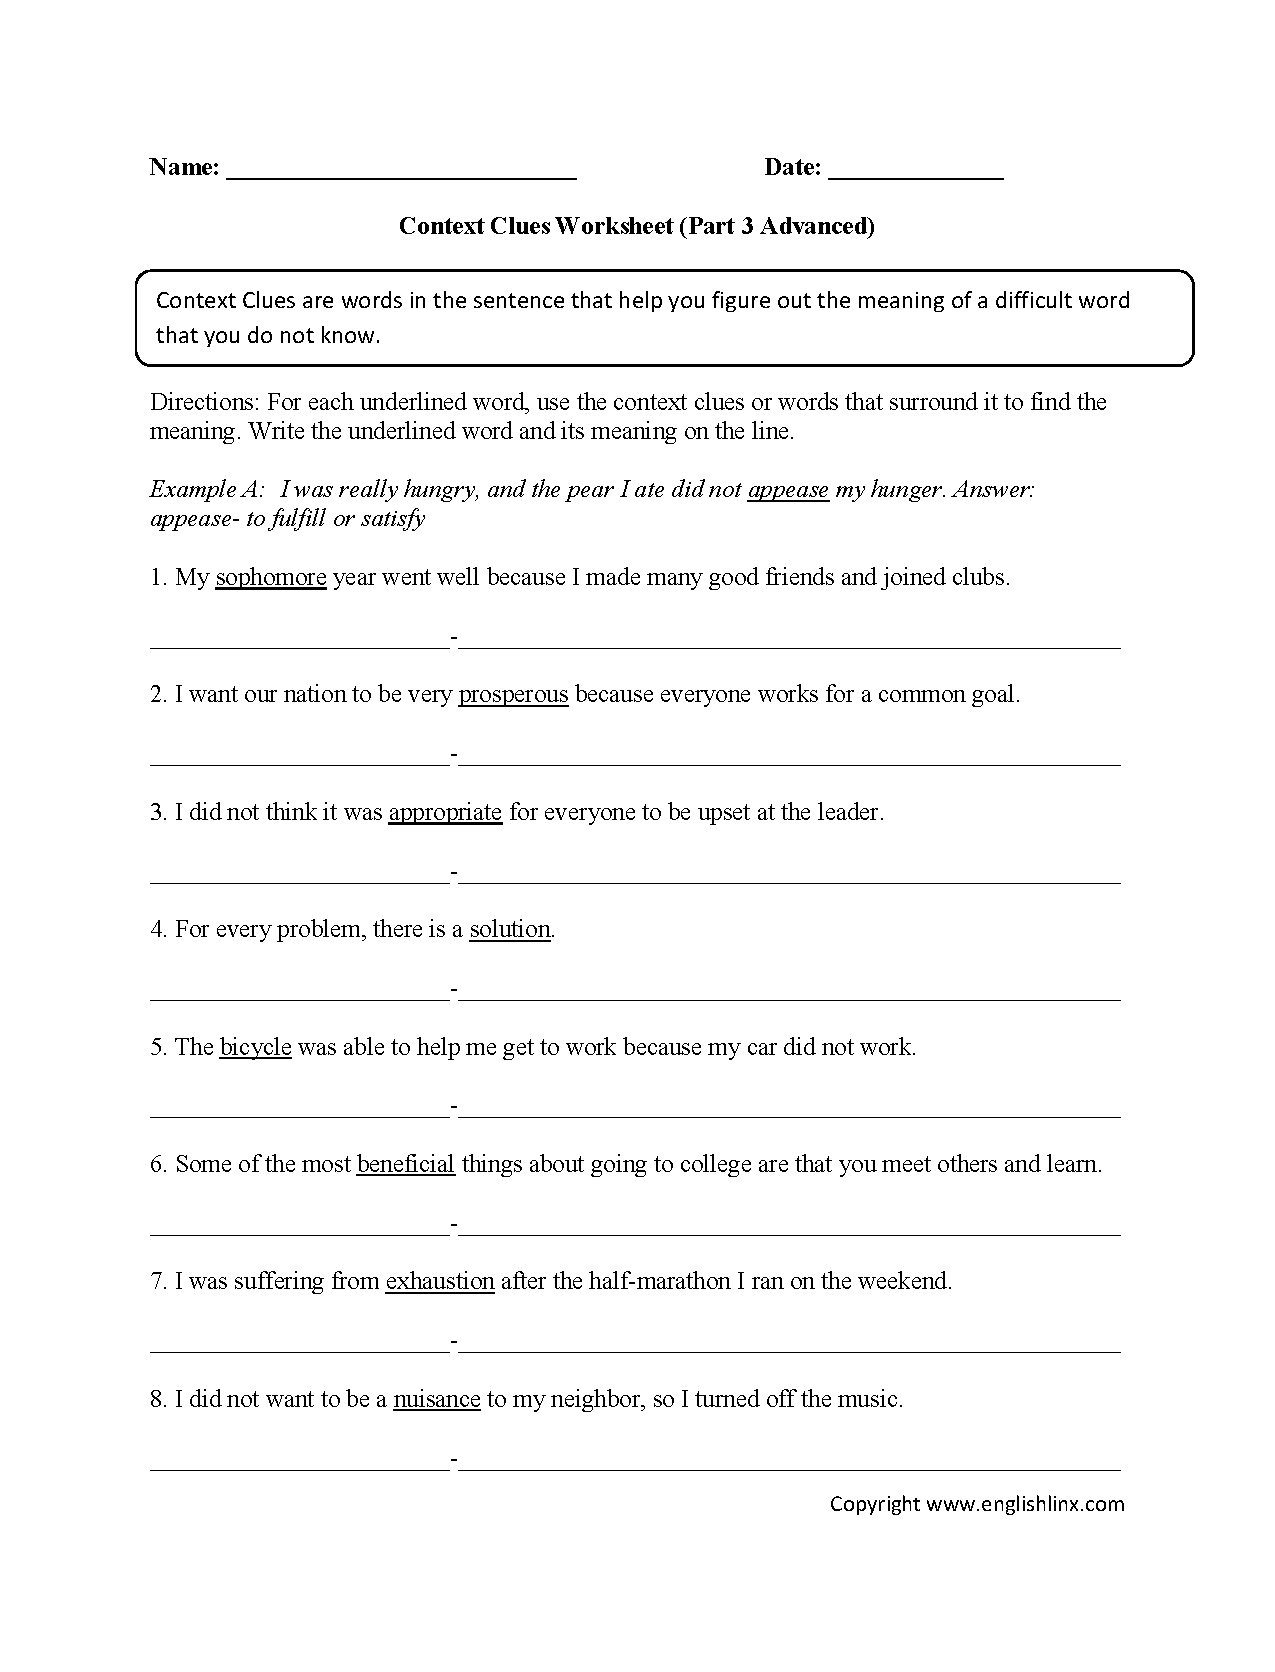 hight resolution of Englishlinx.com   Context Clues Worksheets